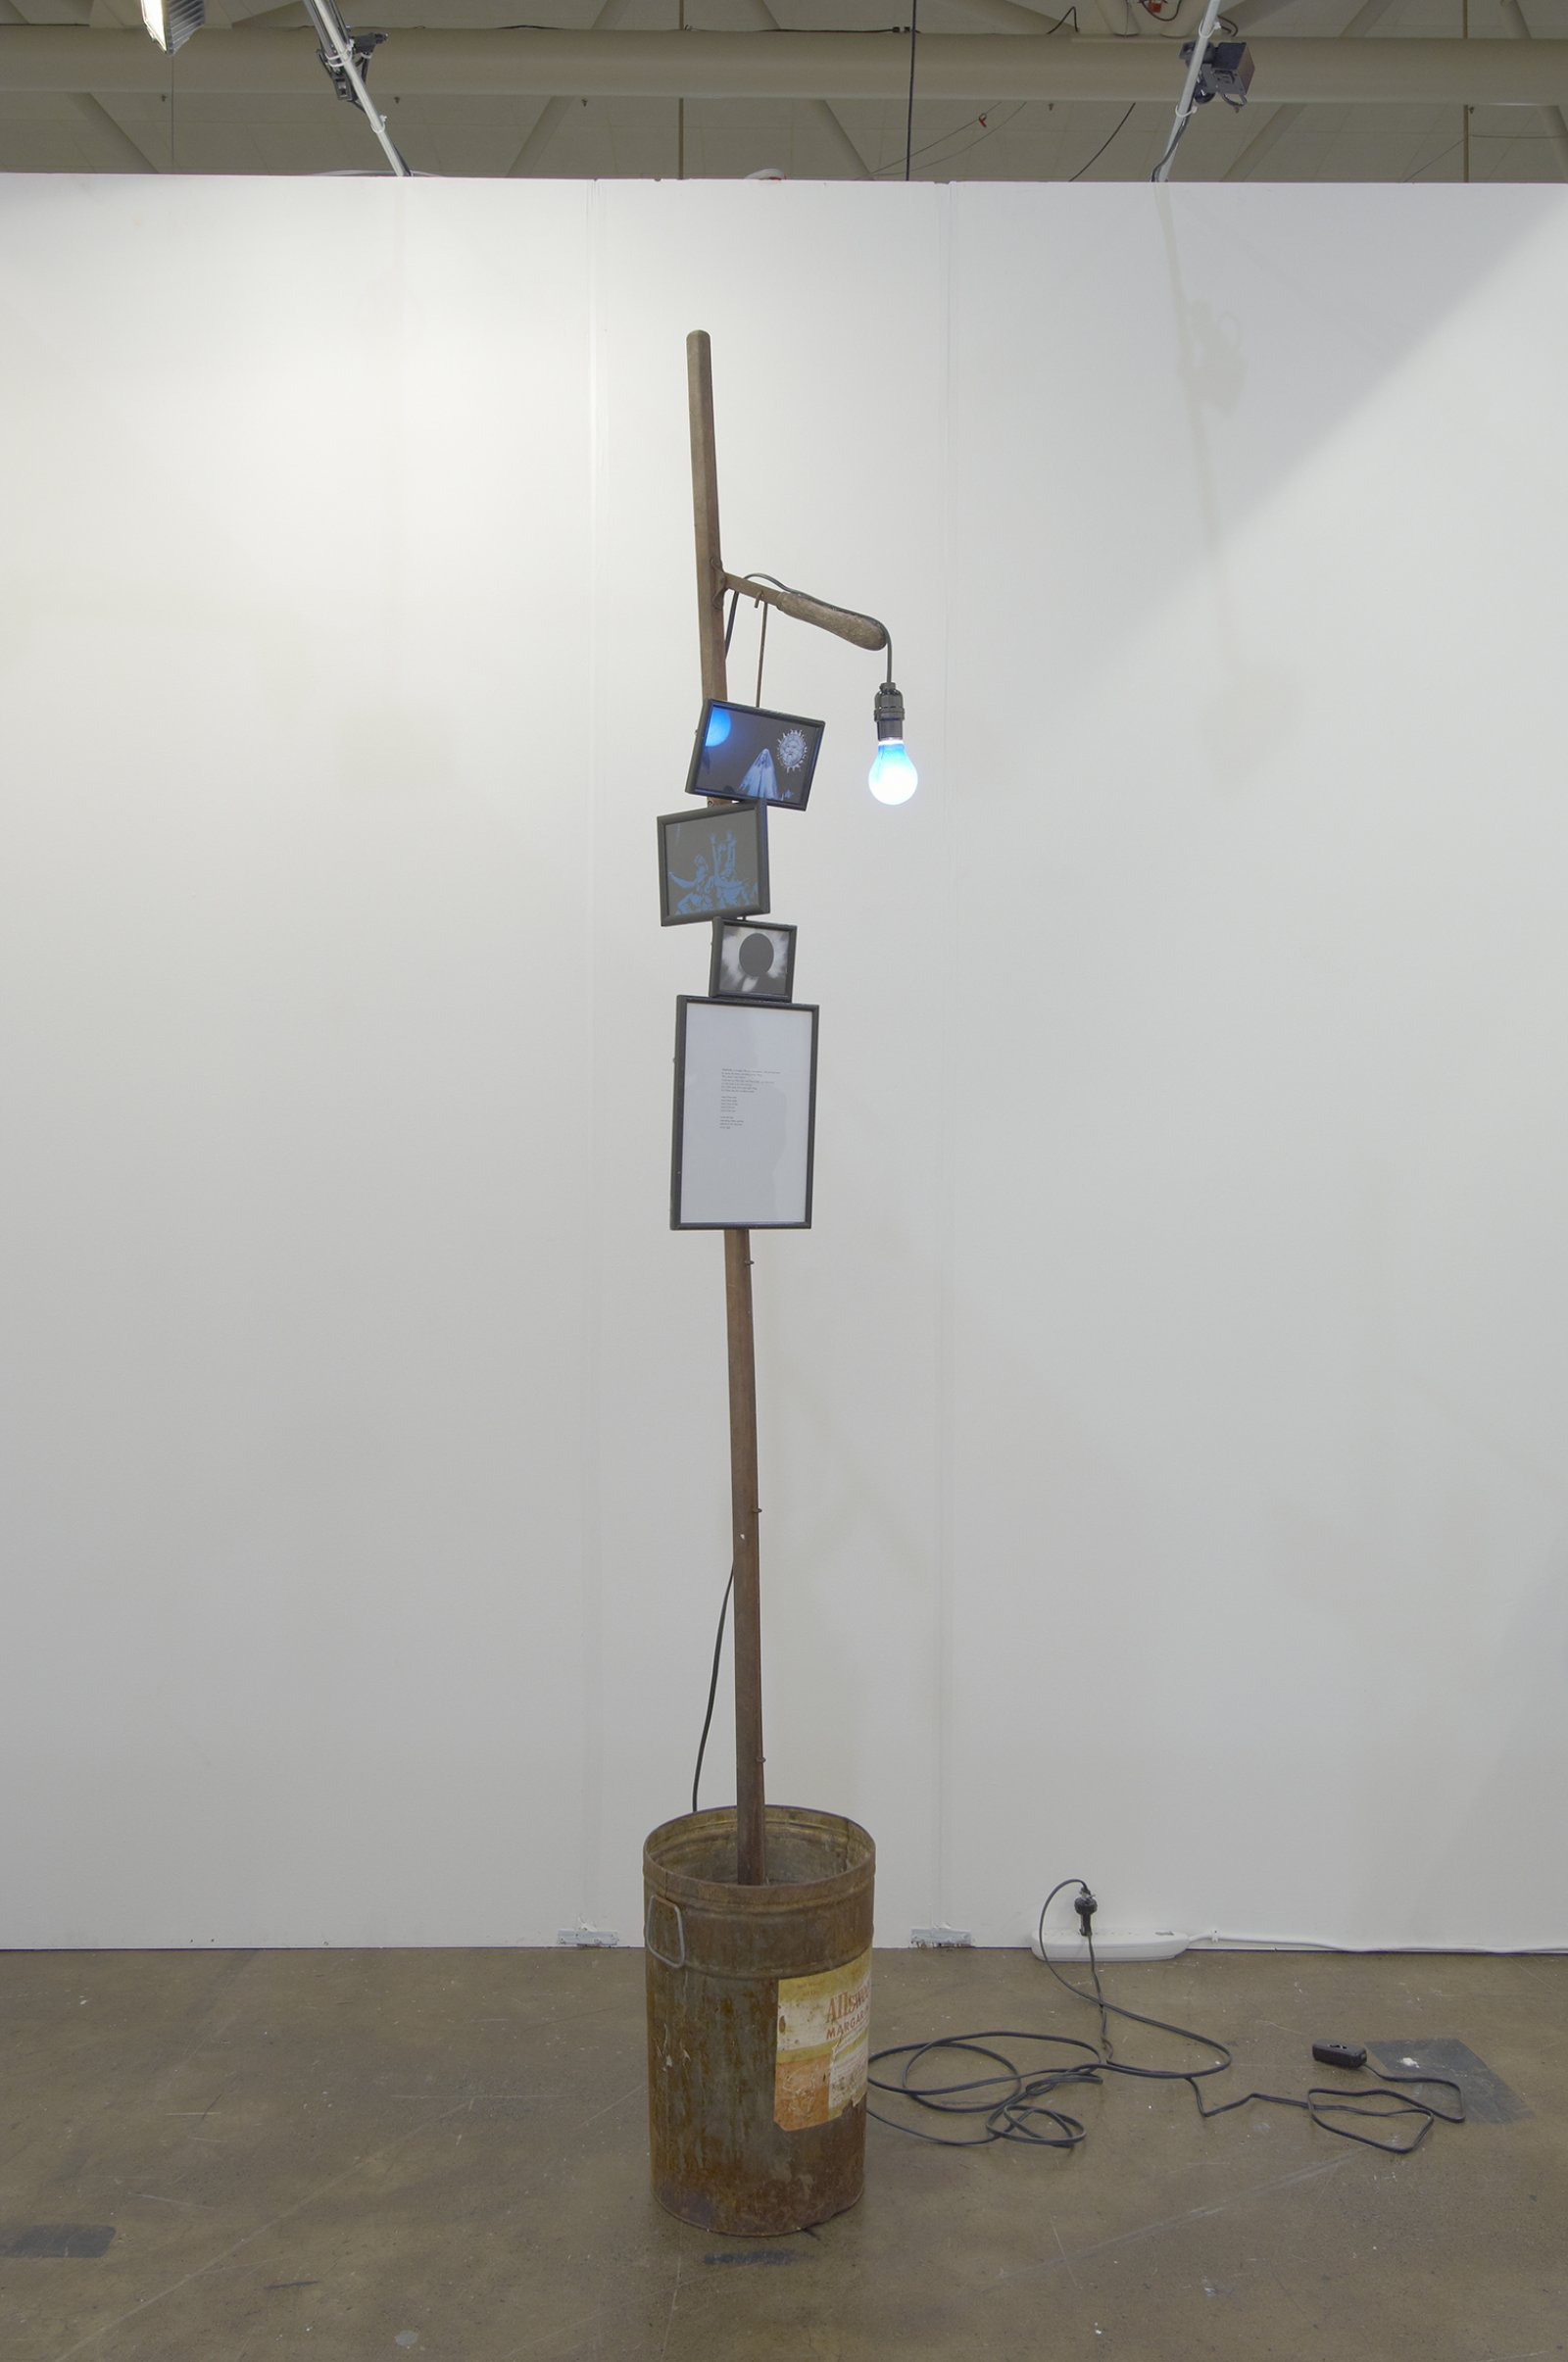 Geoffrey Farmer,I am by nature one and also many, dividing the single me into many, and even opposing them as great and small, light and dark, and in ten thousand other ways, 2006–2008,pruning pole, margarine bucket, concrete, poem, framed pictures, bluelight, 97 x 18 x 12 in. (246 x 46 x 31 cm)